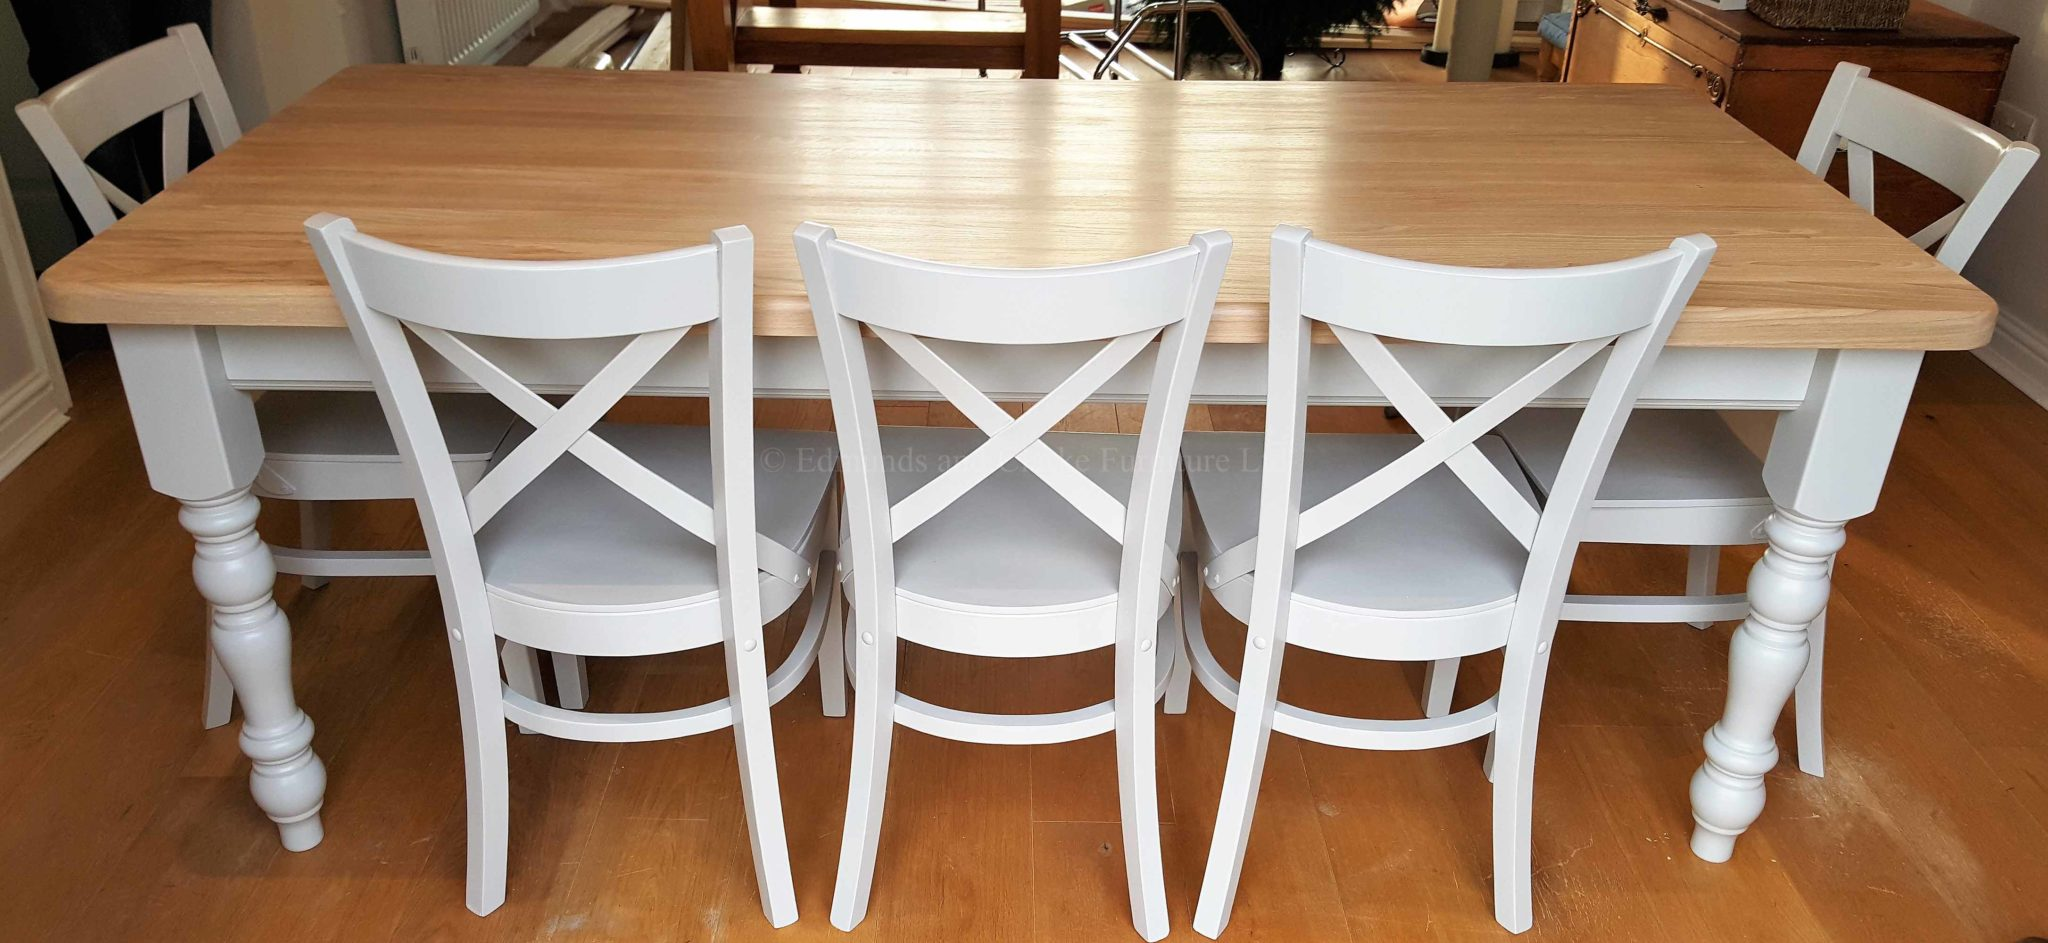 Farmhouse 6' x 3' table with oxford chairs